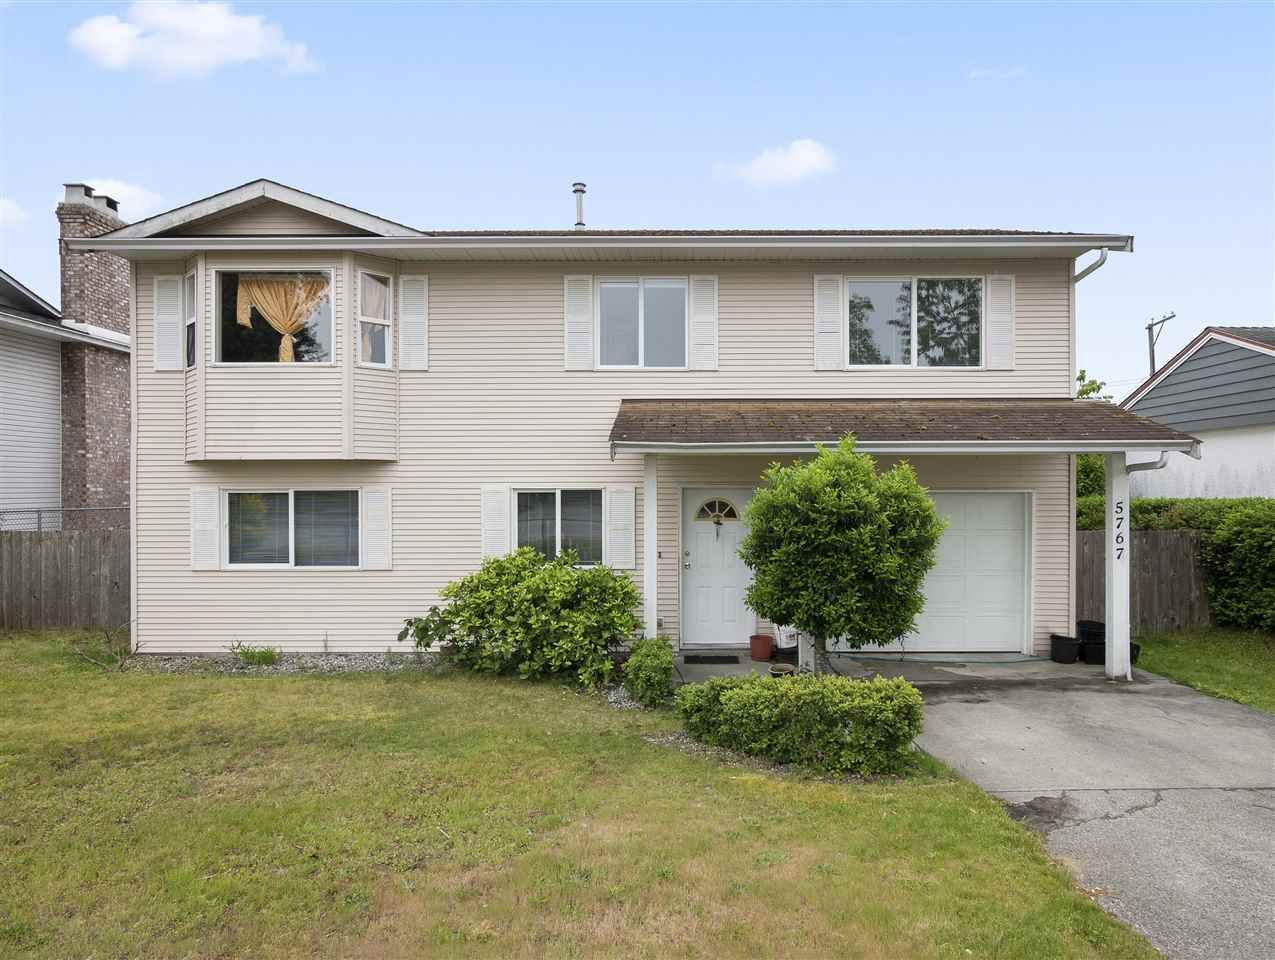 Main Photo: 5767 DOLPHIN Street in Sechelt: Sechelt District House for sale (Sunshine Coast)  : MLS®# R2371016